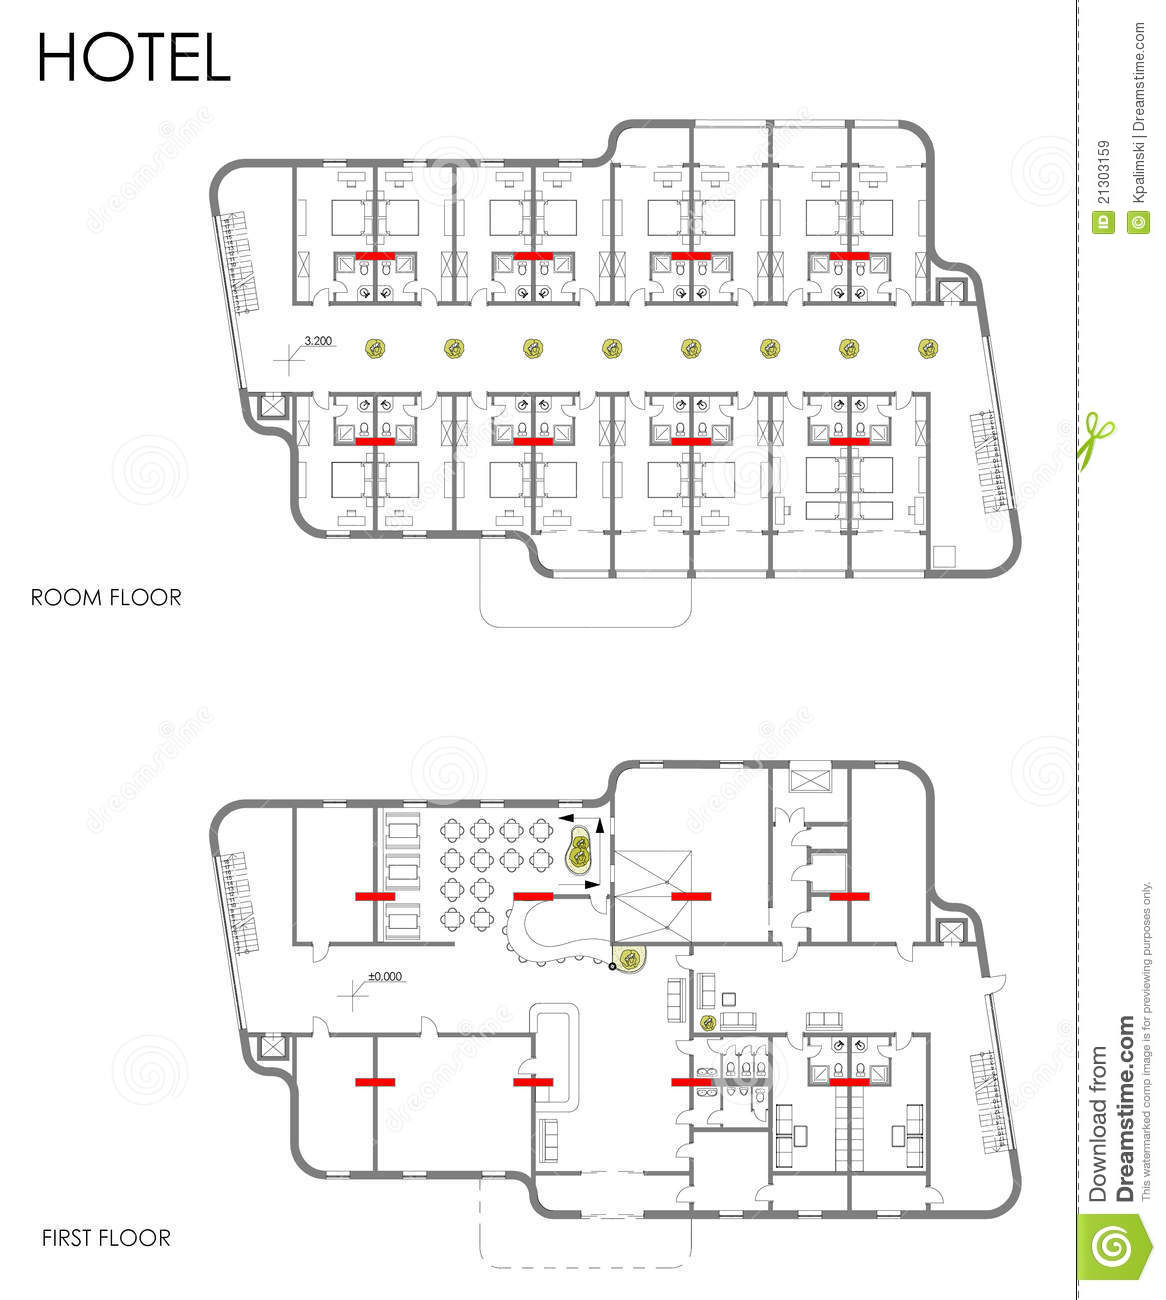 hotel drawing plan stock illustration illustration of second 21303159. Black Bedroom Furniture Sets. Home Design Ideas